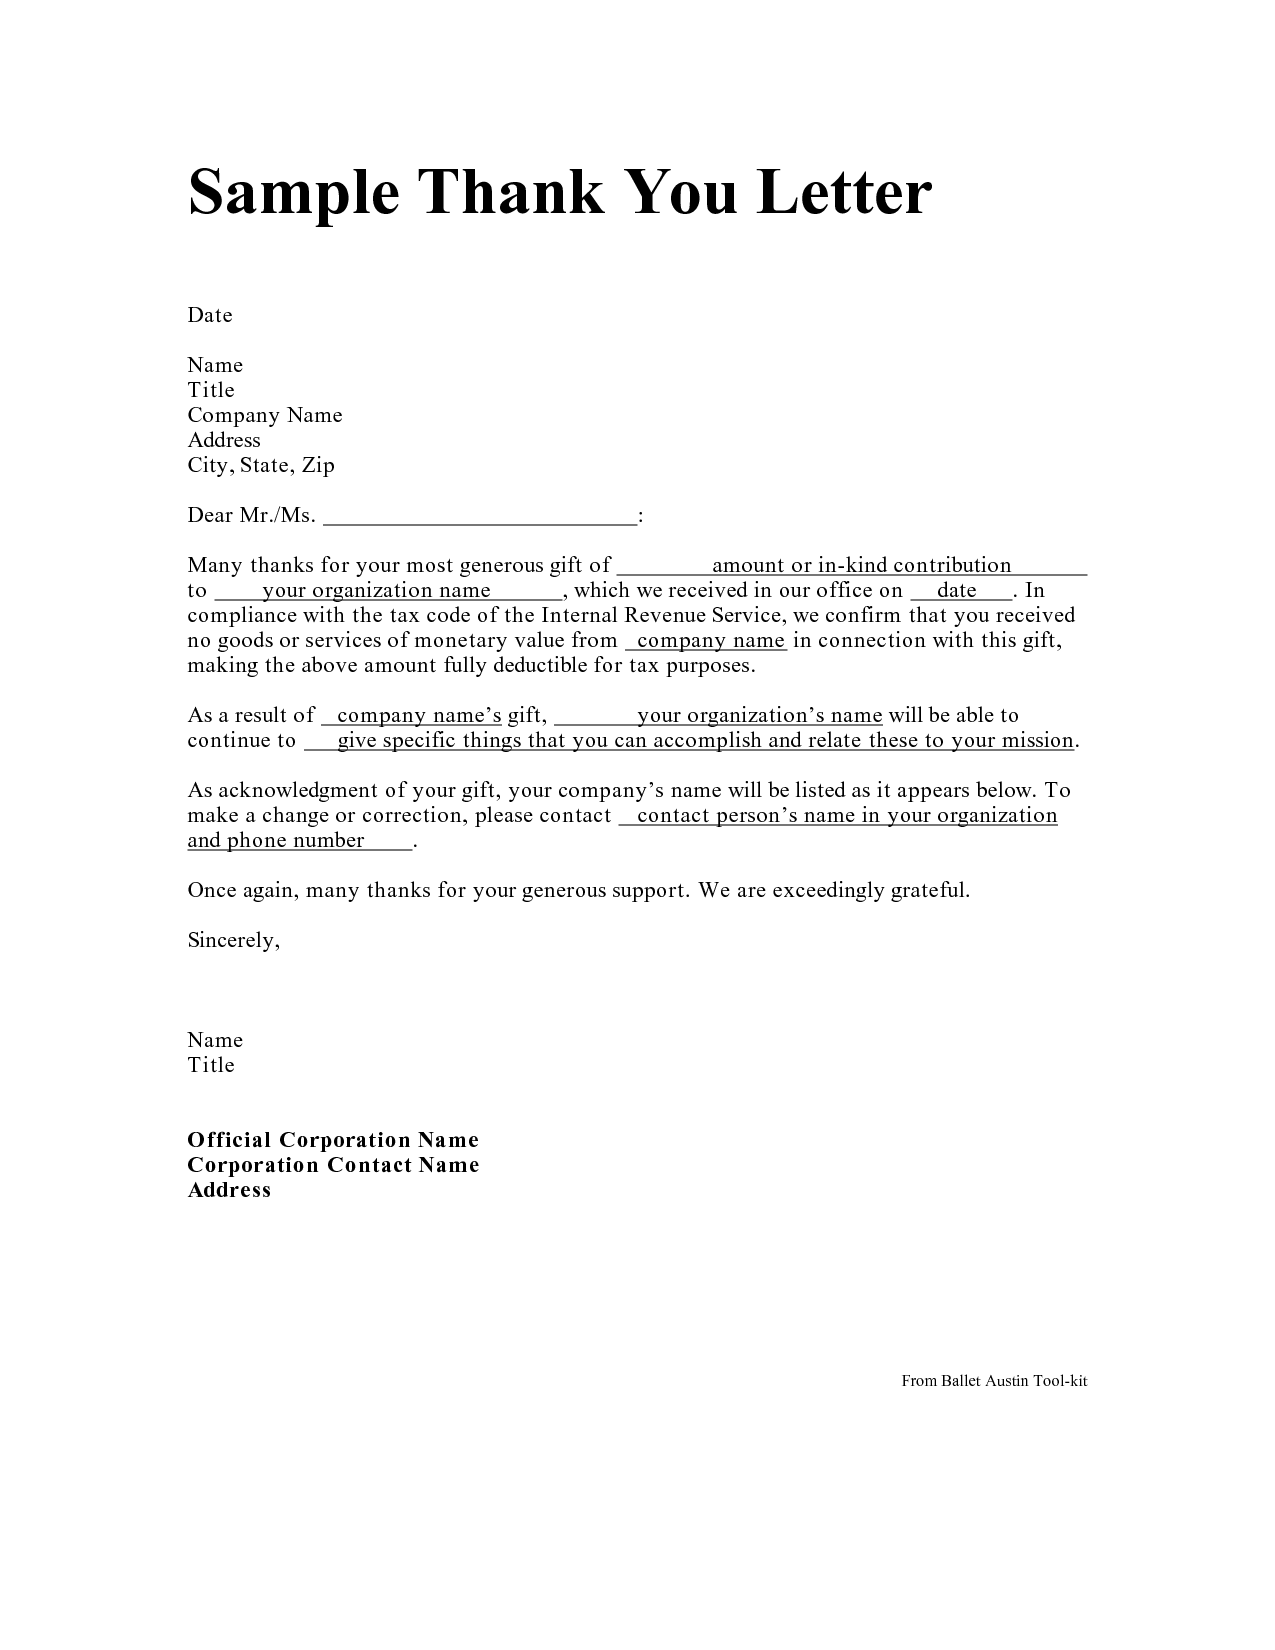 Personal Thank You Letter Personal Thank You Letter Samples